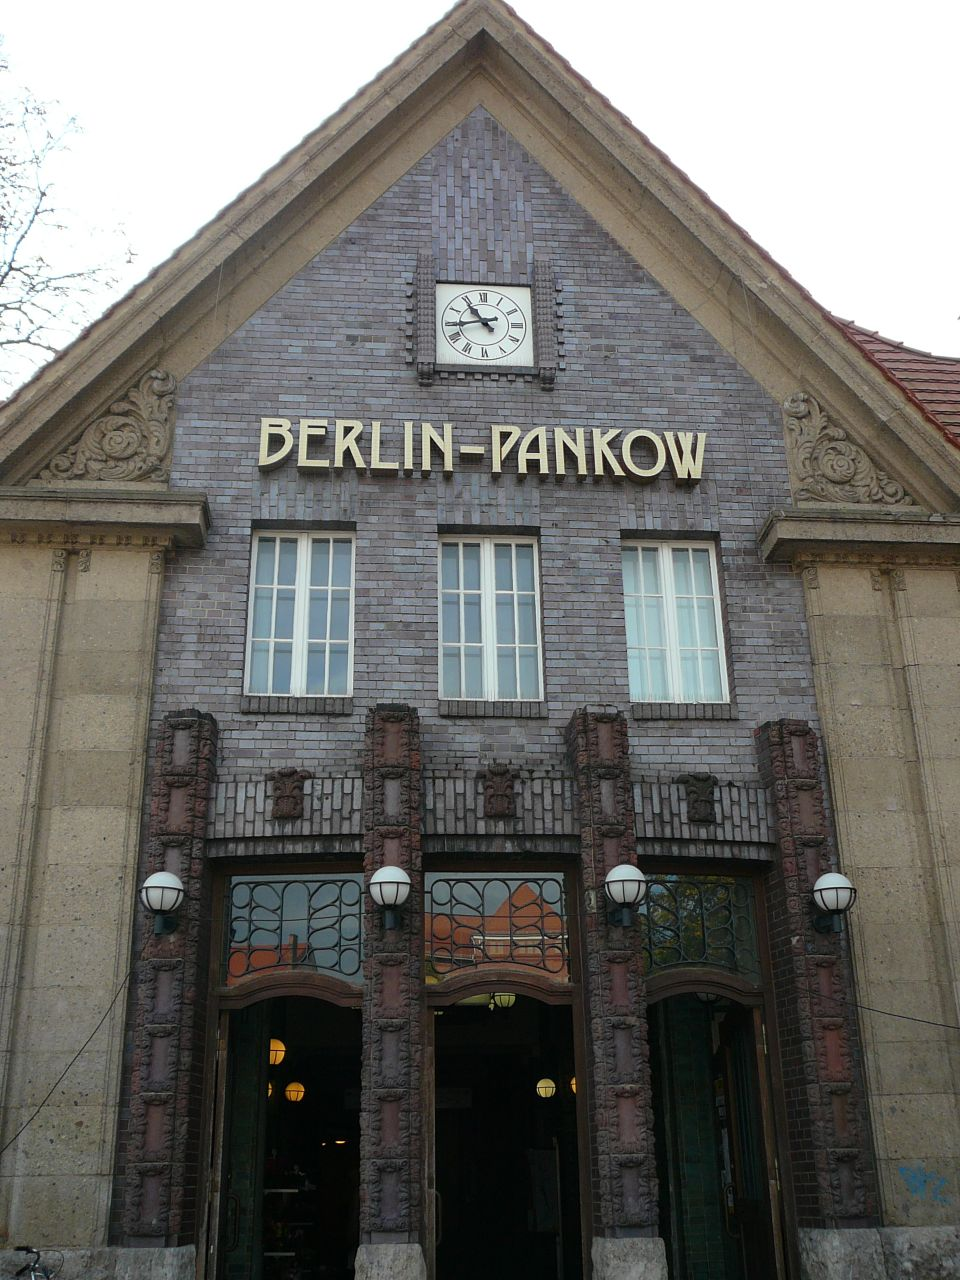 Www 24 De Berlin-pankow - Wikimedia Commons